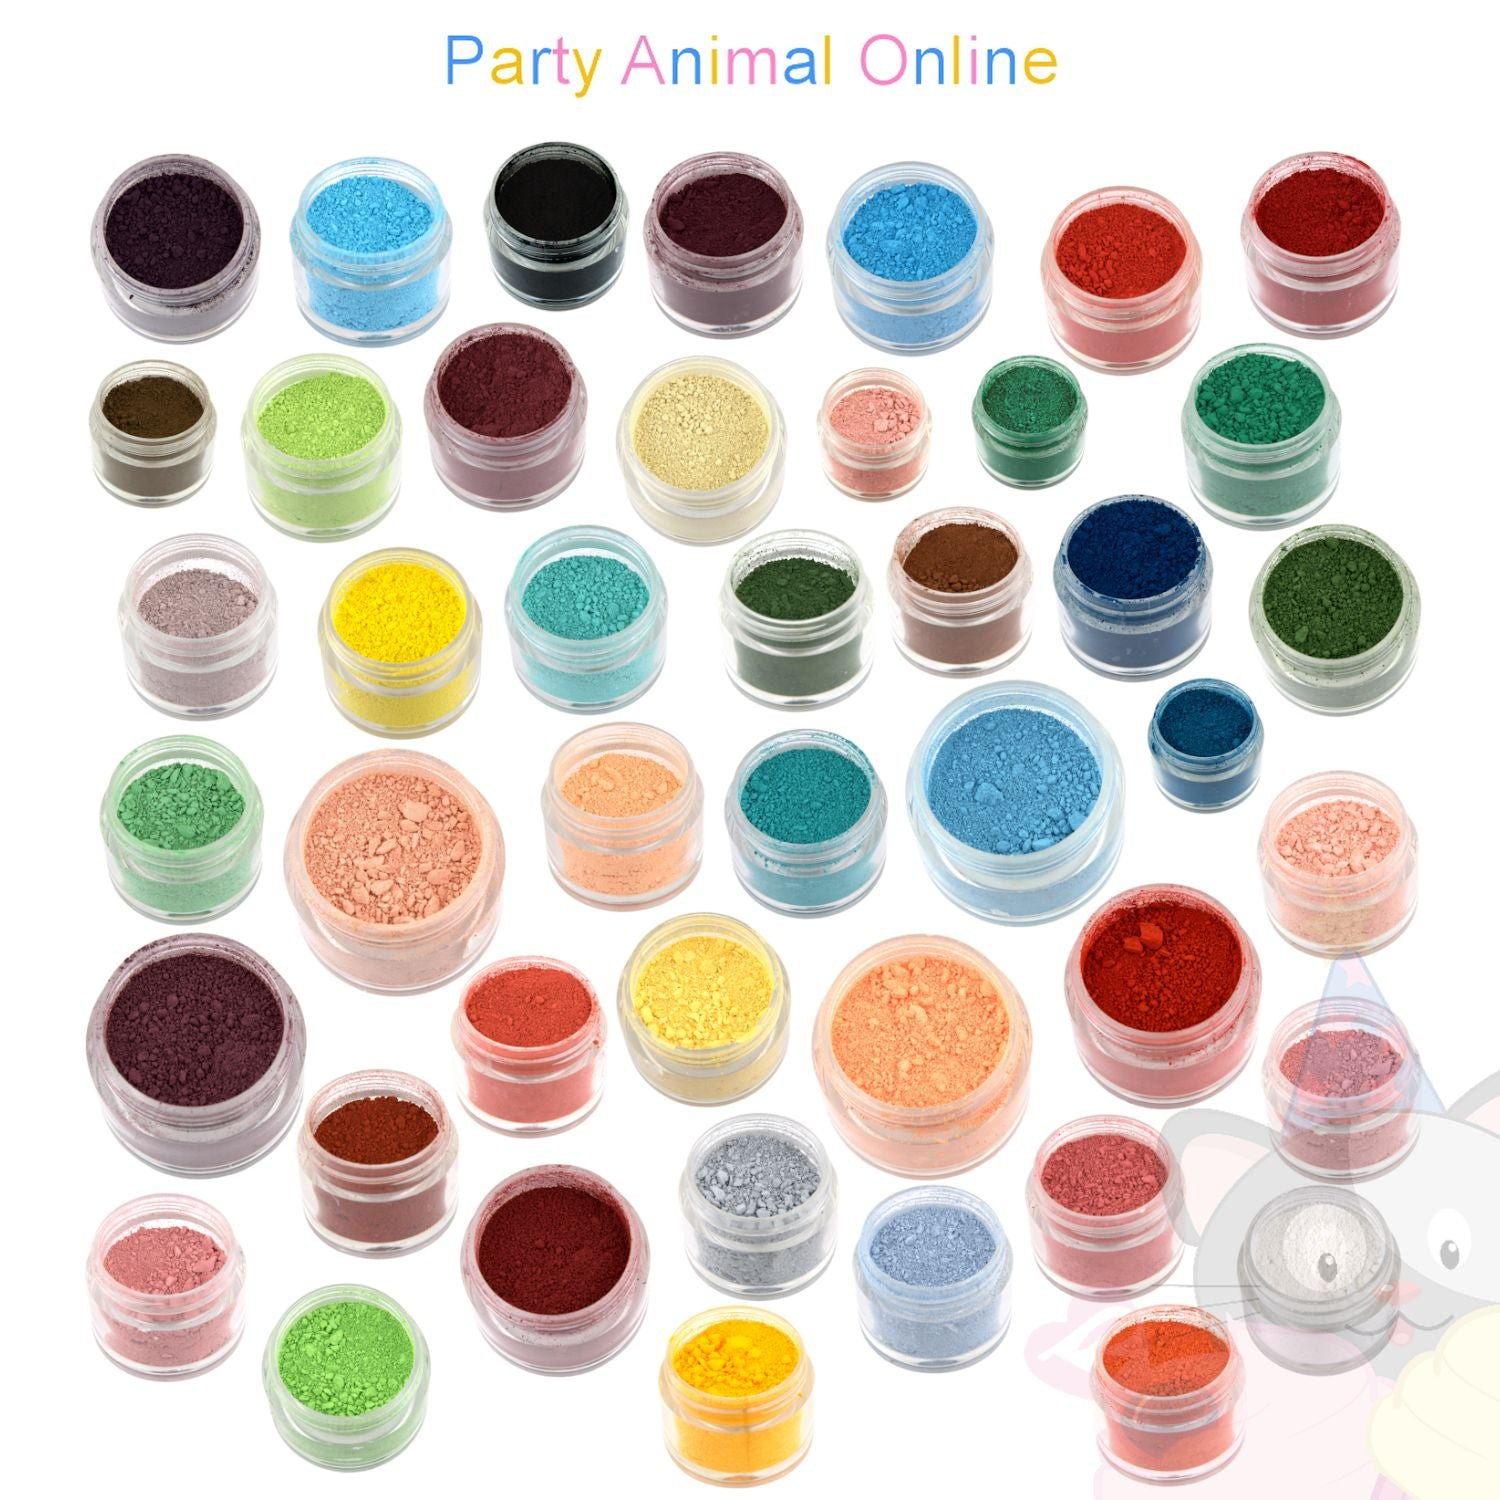 Rainbow Dust Powder Colour Range - Complete Set of 44